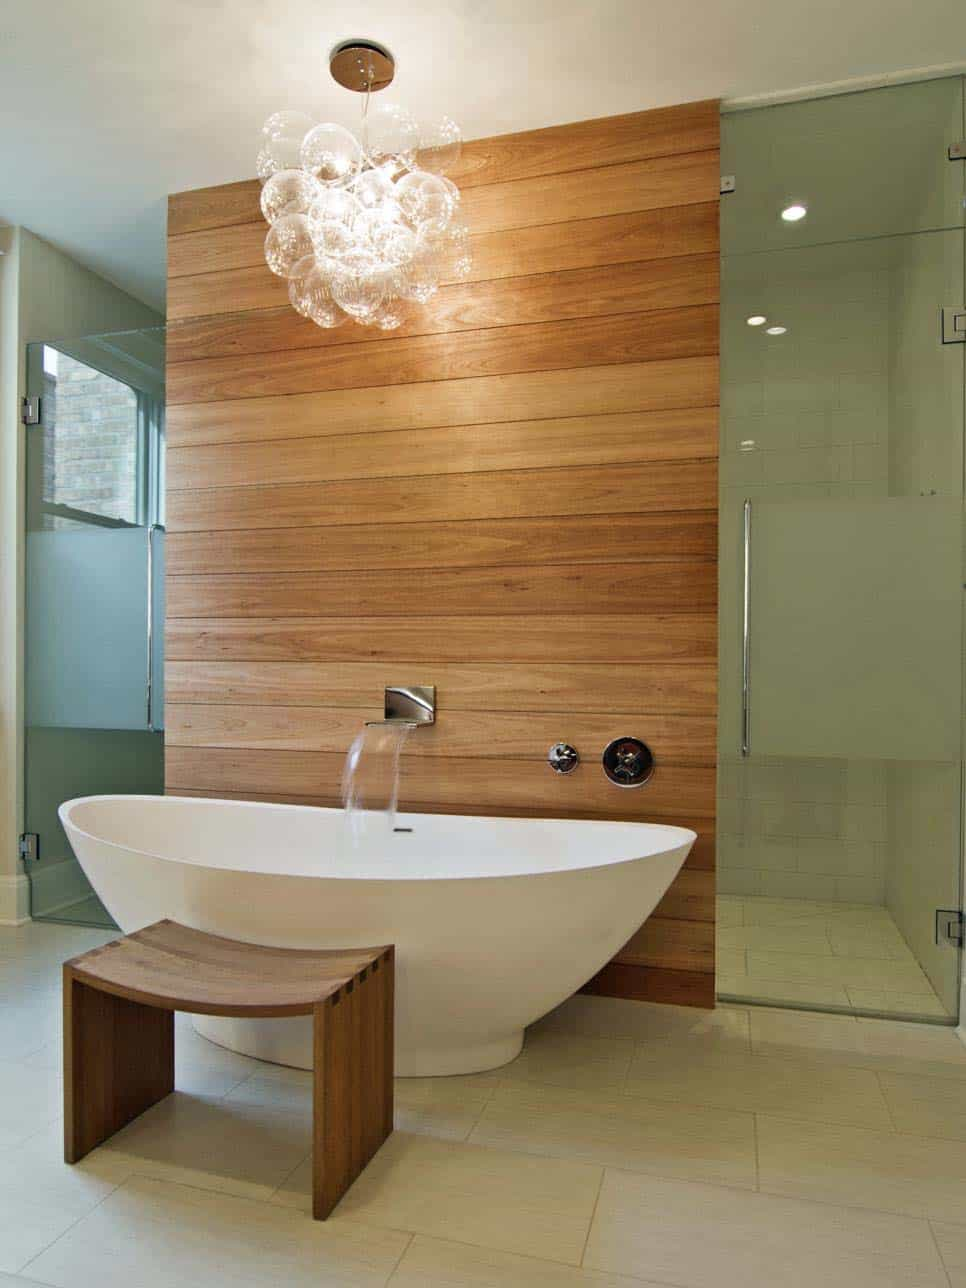 Freestanding-Tubs-Bathroom-Ideas-19-1 Kindesign